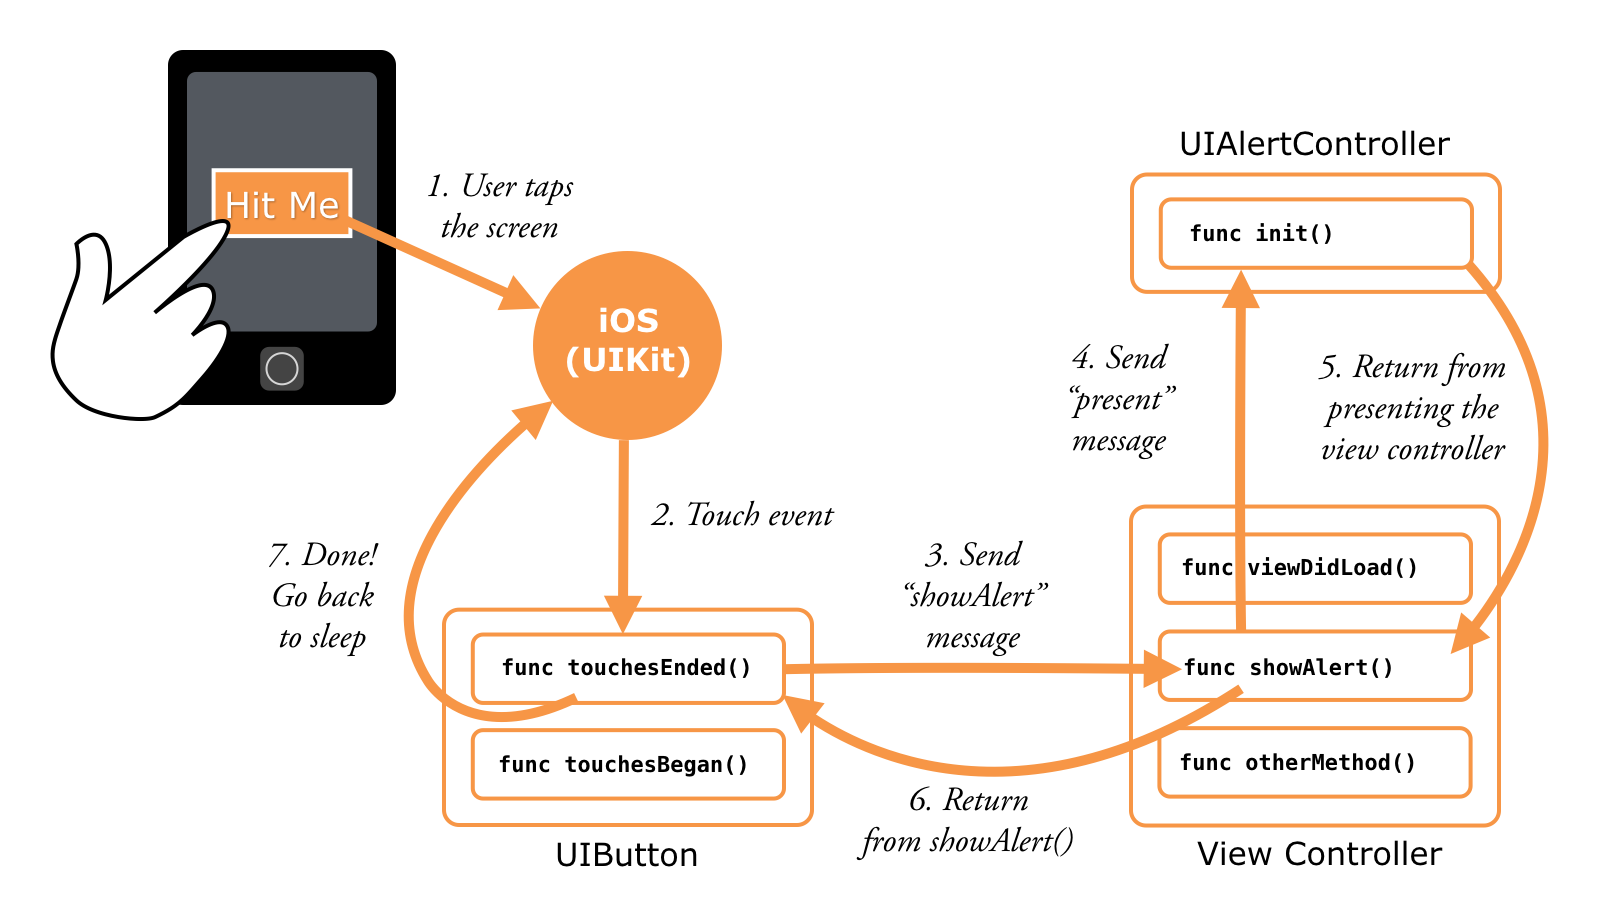 The general flow of events in an app